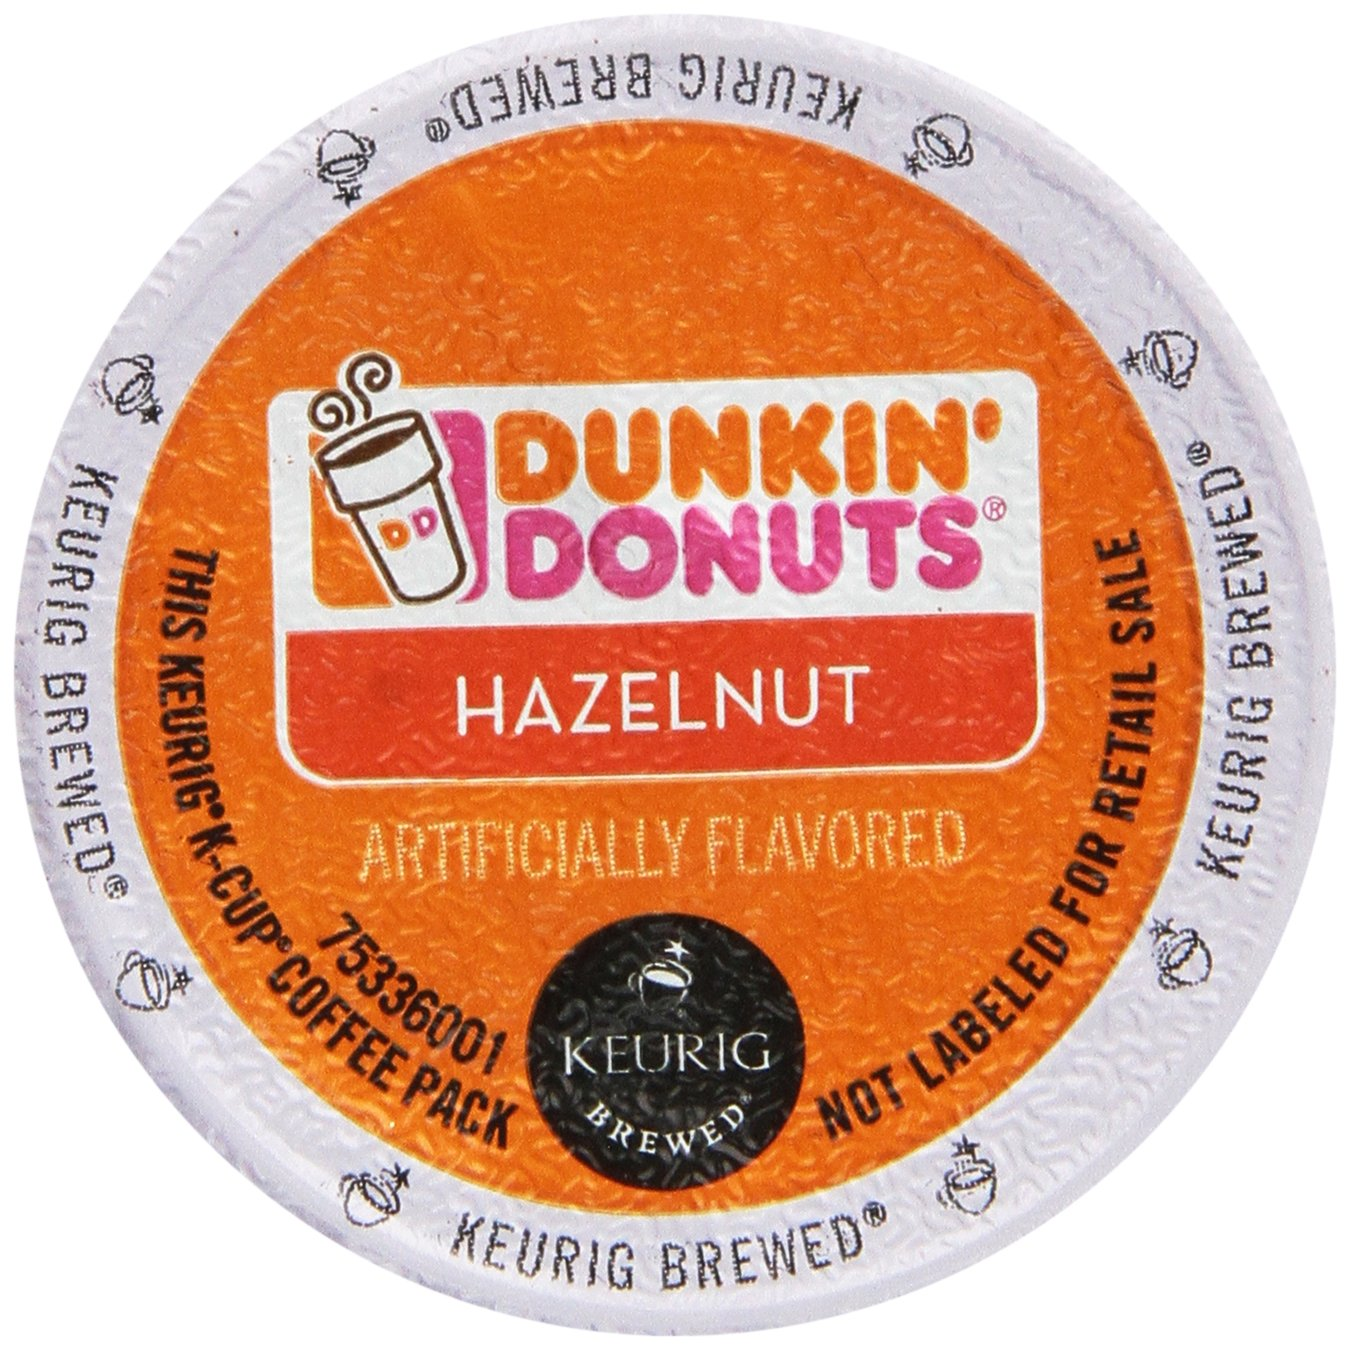 Dunkin' Donuts Hazelnut Flavored Coffee K-Cup Pods, For Keurig Brewers, 60 Count